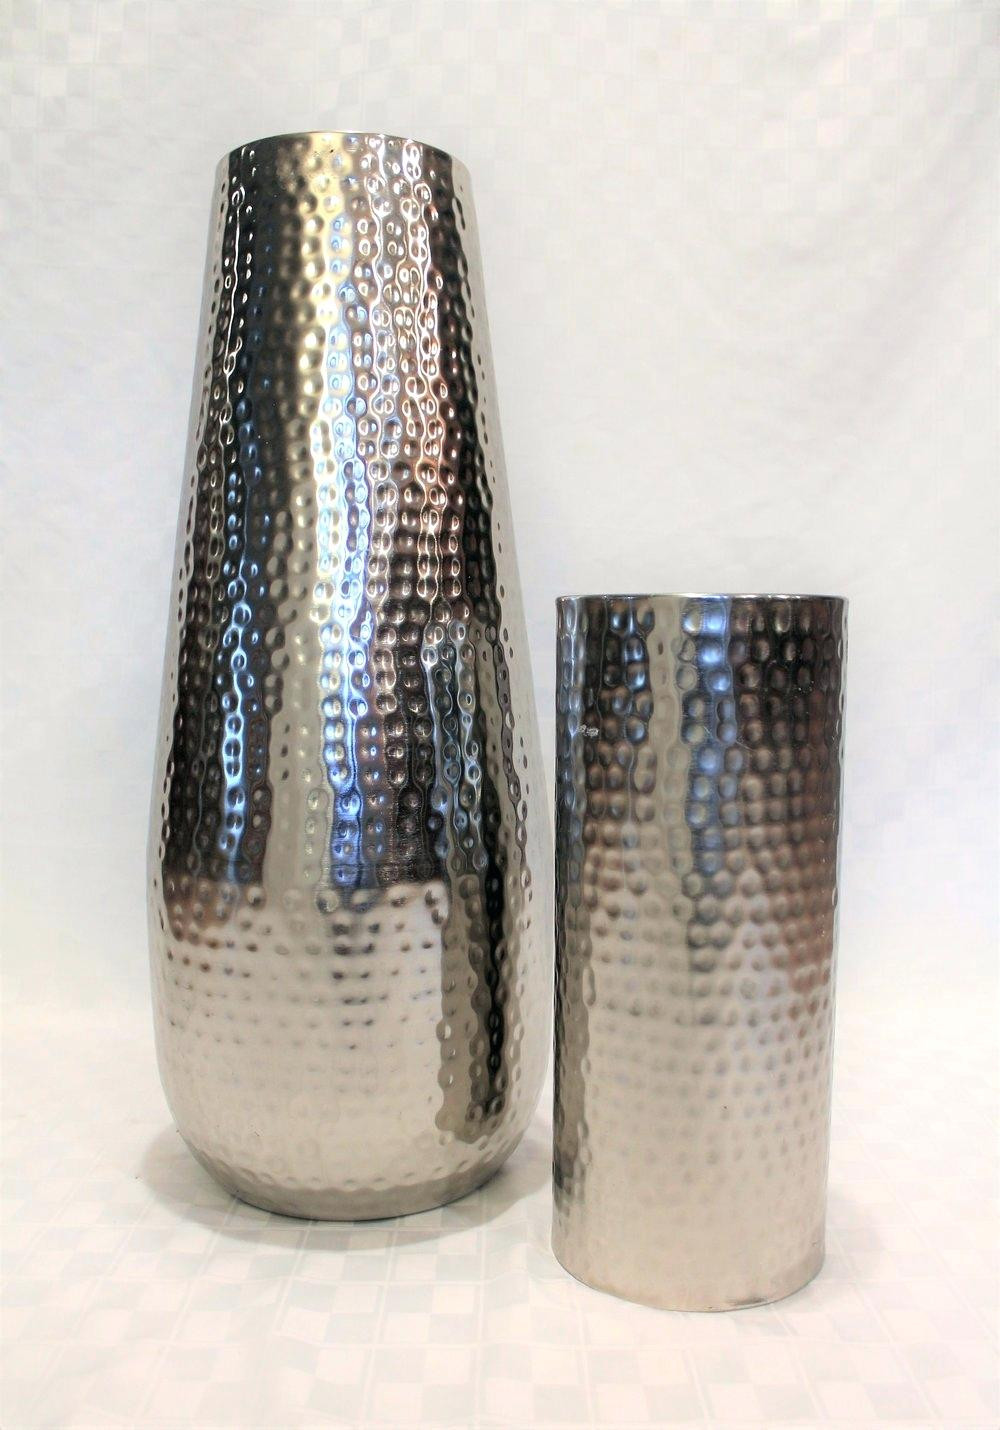 Tall Silver Vases for Wedding Centerpieces Of Silver Vases Glass Bulk Tall wholesale Flower Cleanwaternetwork Fl org for Silver Vases Glass Bulk Tall wholesale Flower